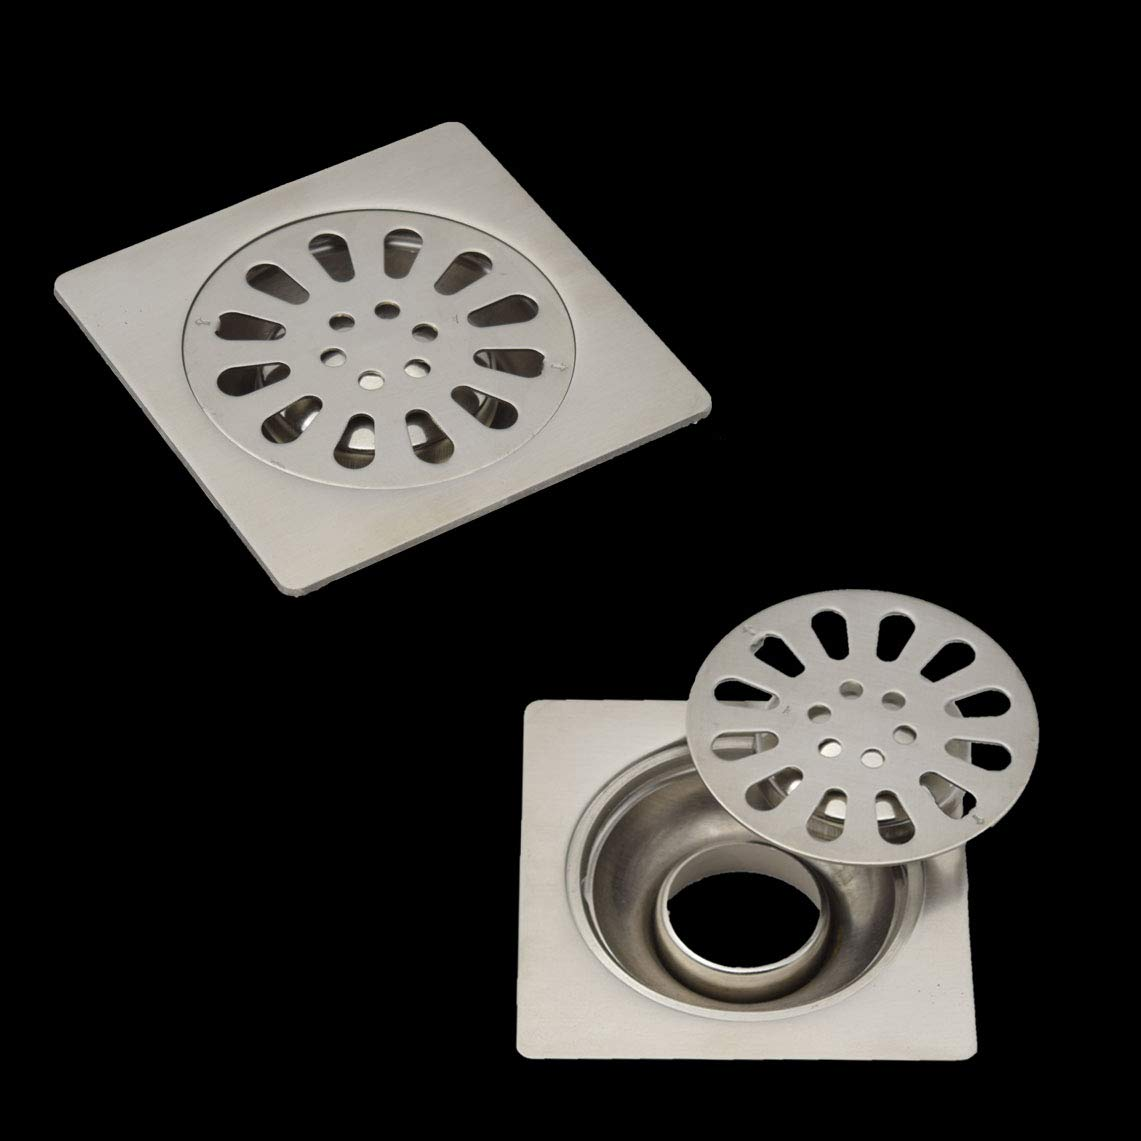 LDEXIN 2pcs 100mm/3.9'' Stainless Steel Square Bathroom Shower Insert Floor Drain with Removable Strainer Cover Chrome Finish for Kitchen, Washroom,Garage, Balcony and Basement